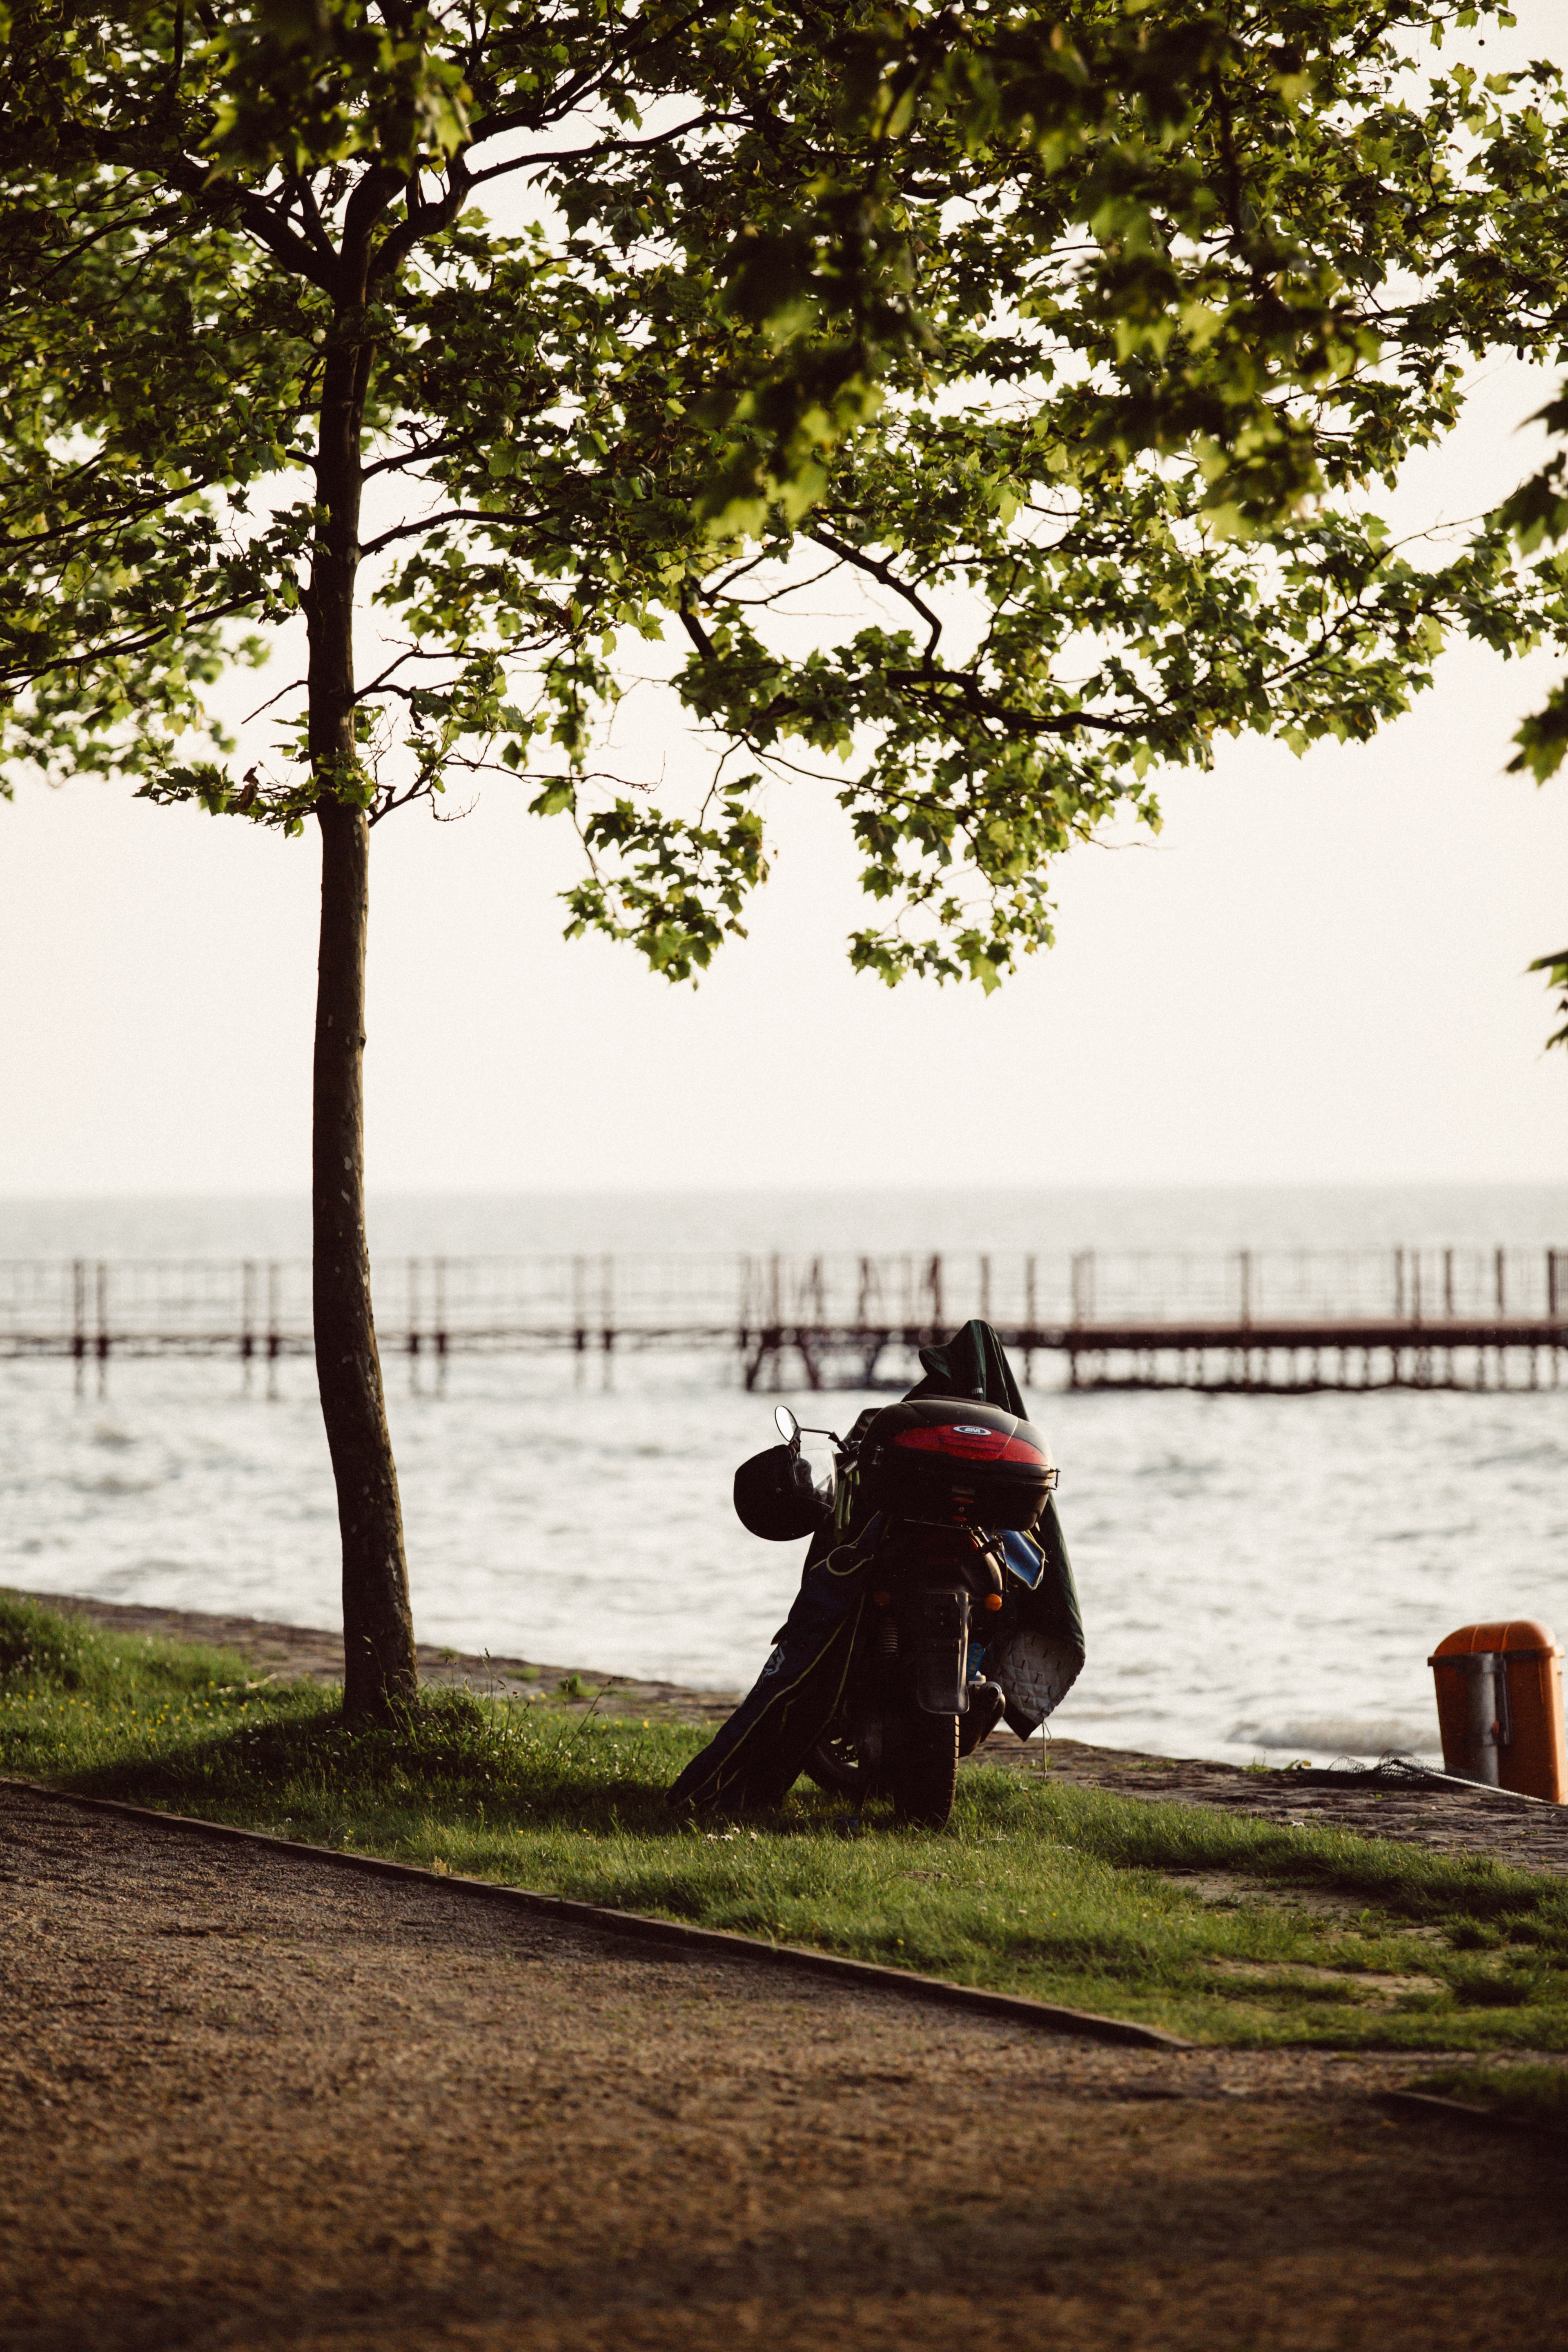 A motorbike stands aside a path, beneath a tree, in front of Lake Balaton